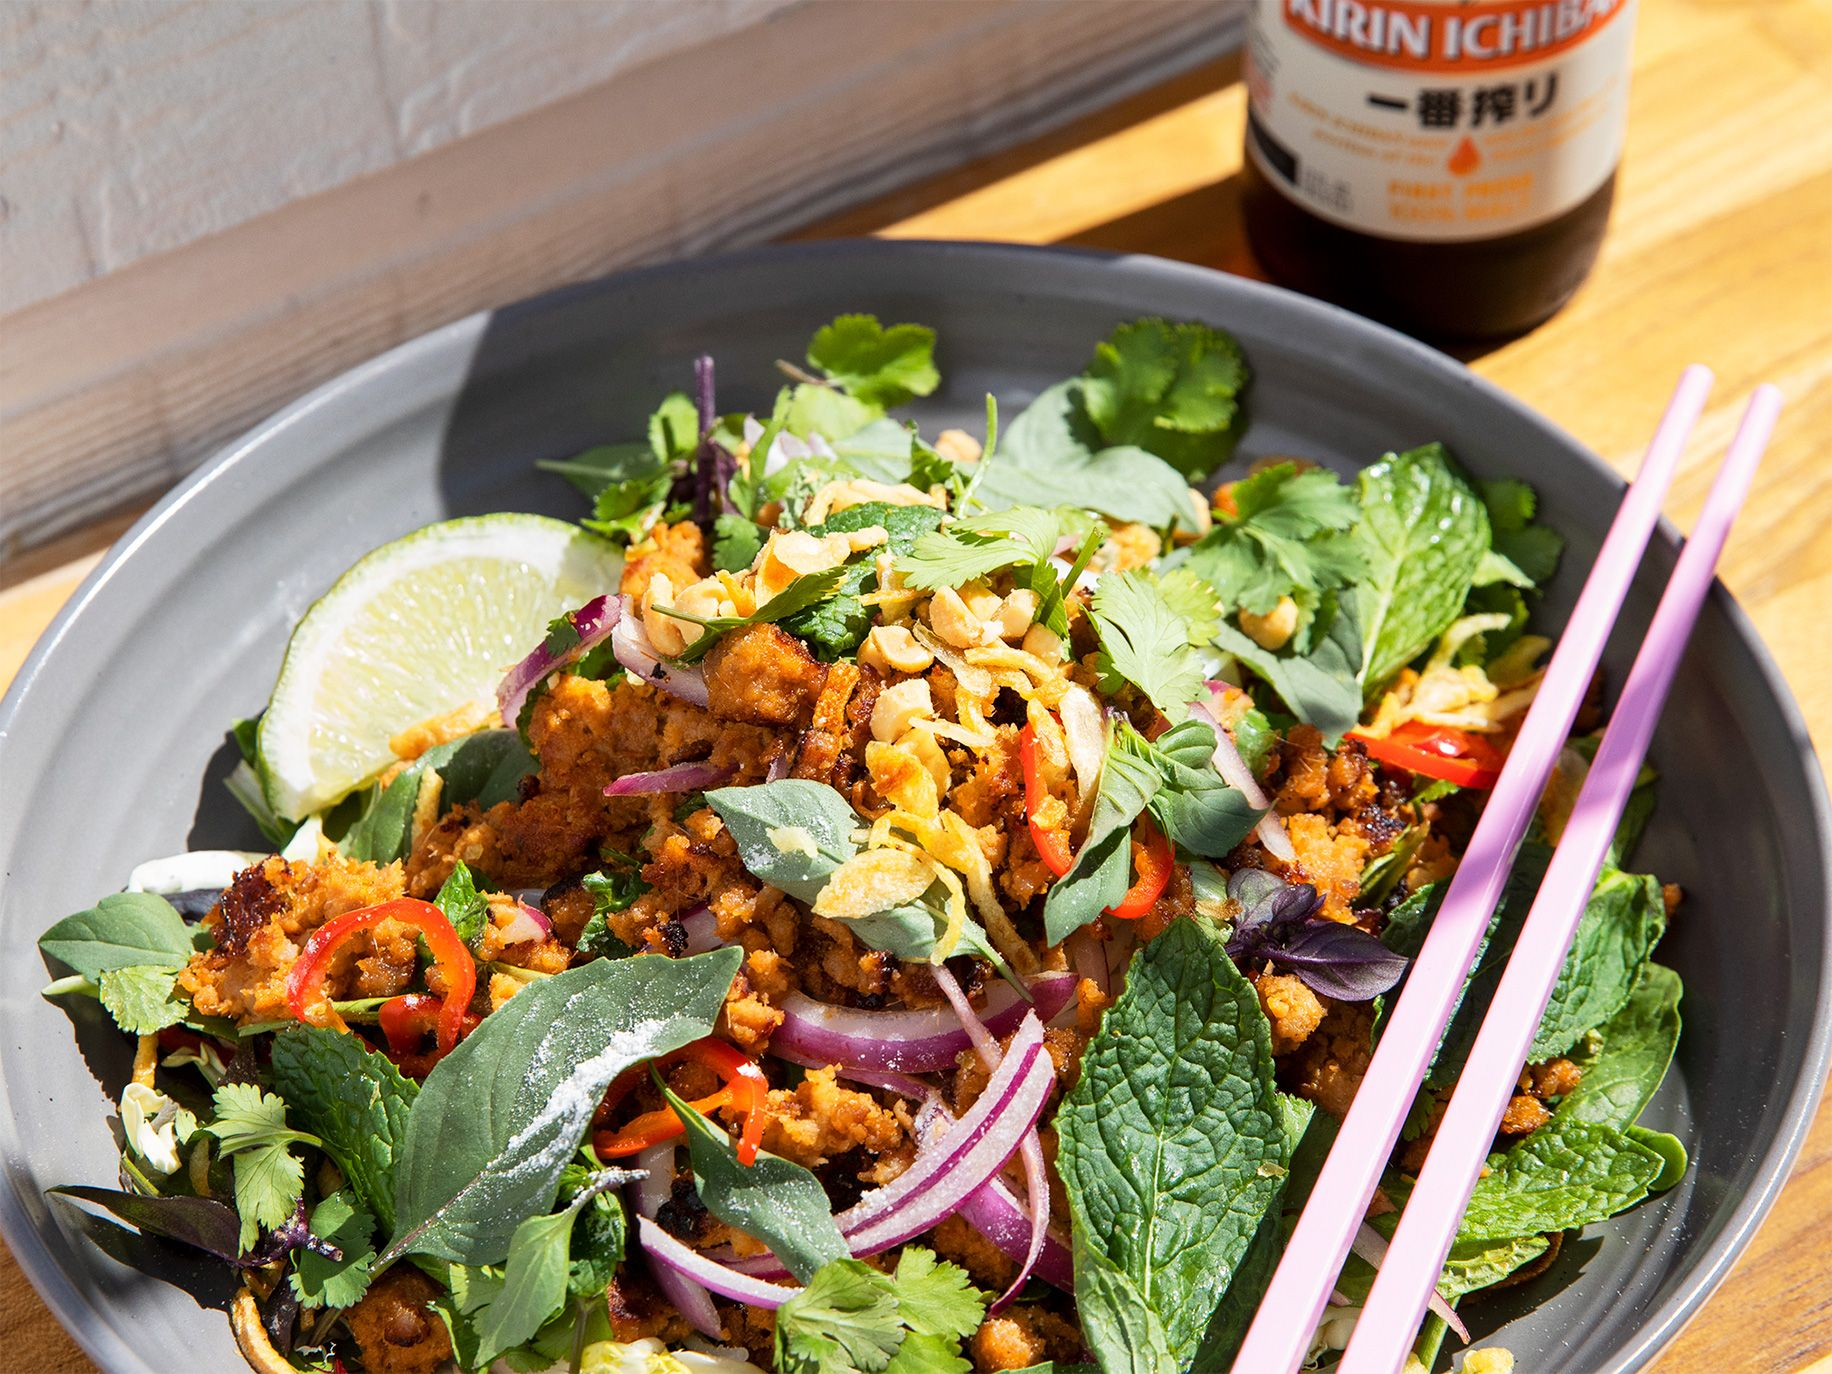 The pork larb noodle bowl, made with minced pork, vermicelli, mixed lettuce, peanuts, chiles, and fried shallots, sits ready to be washed down with a cold beer.